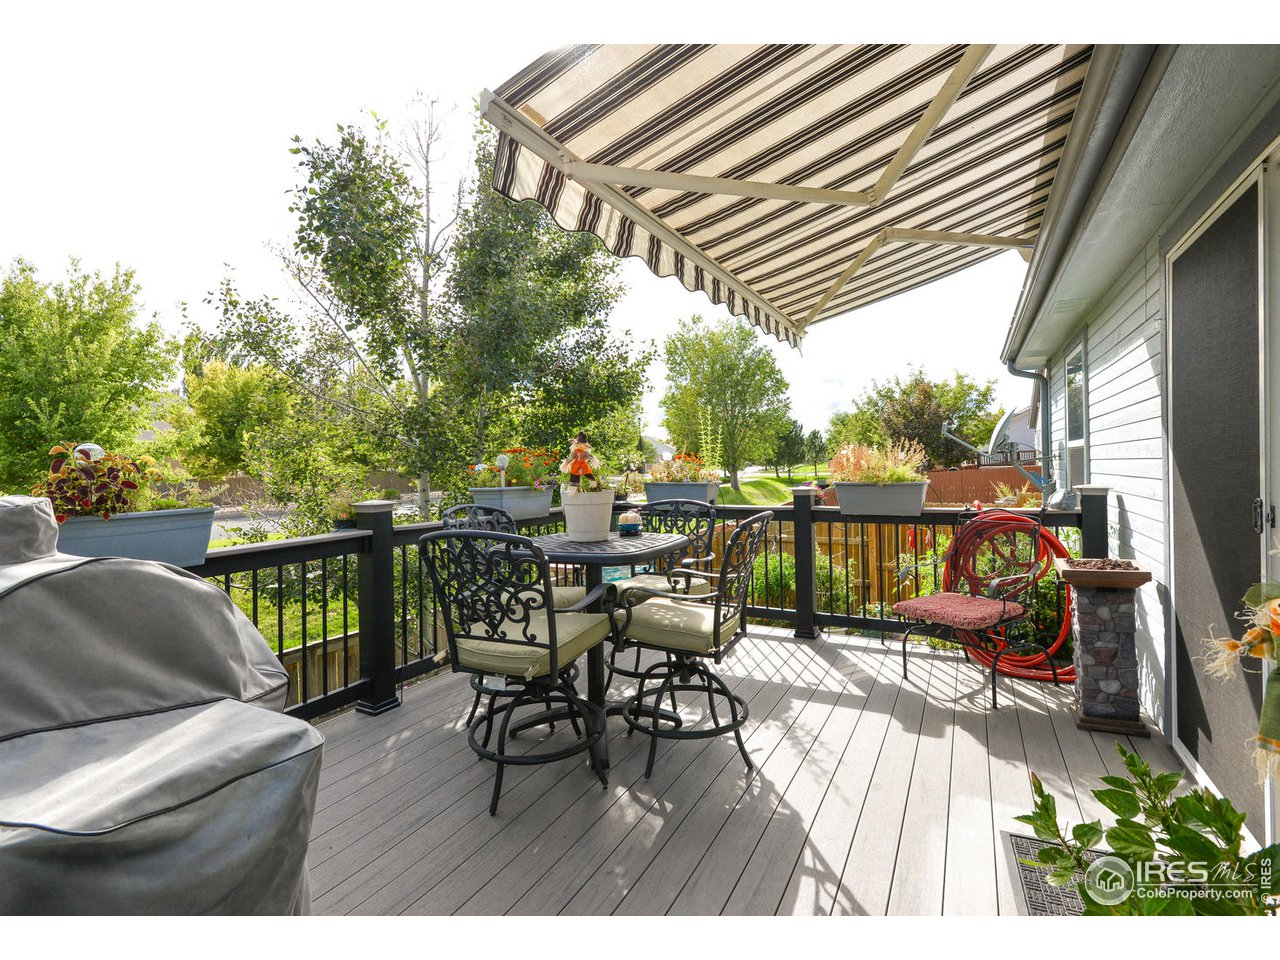 Trex Deck w/ Retractable Awning